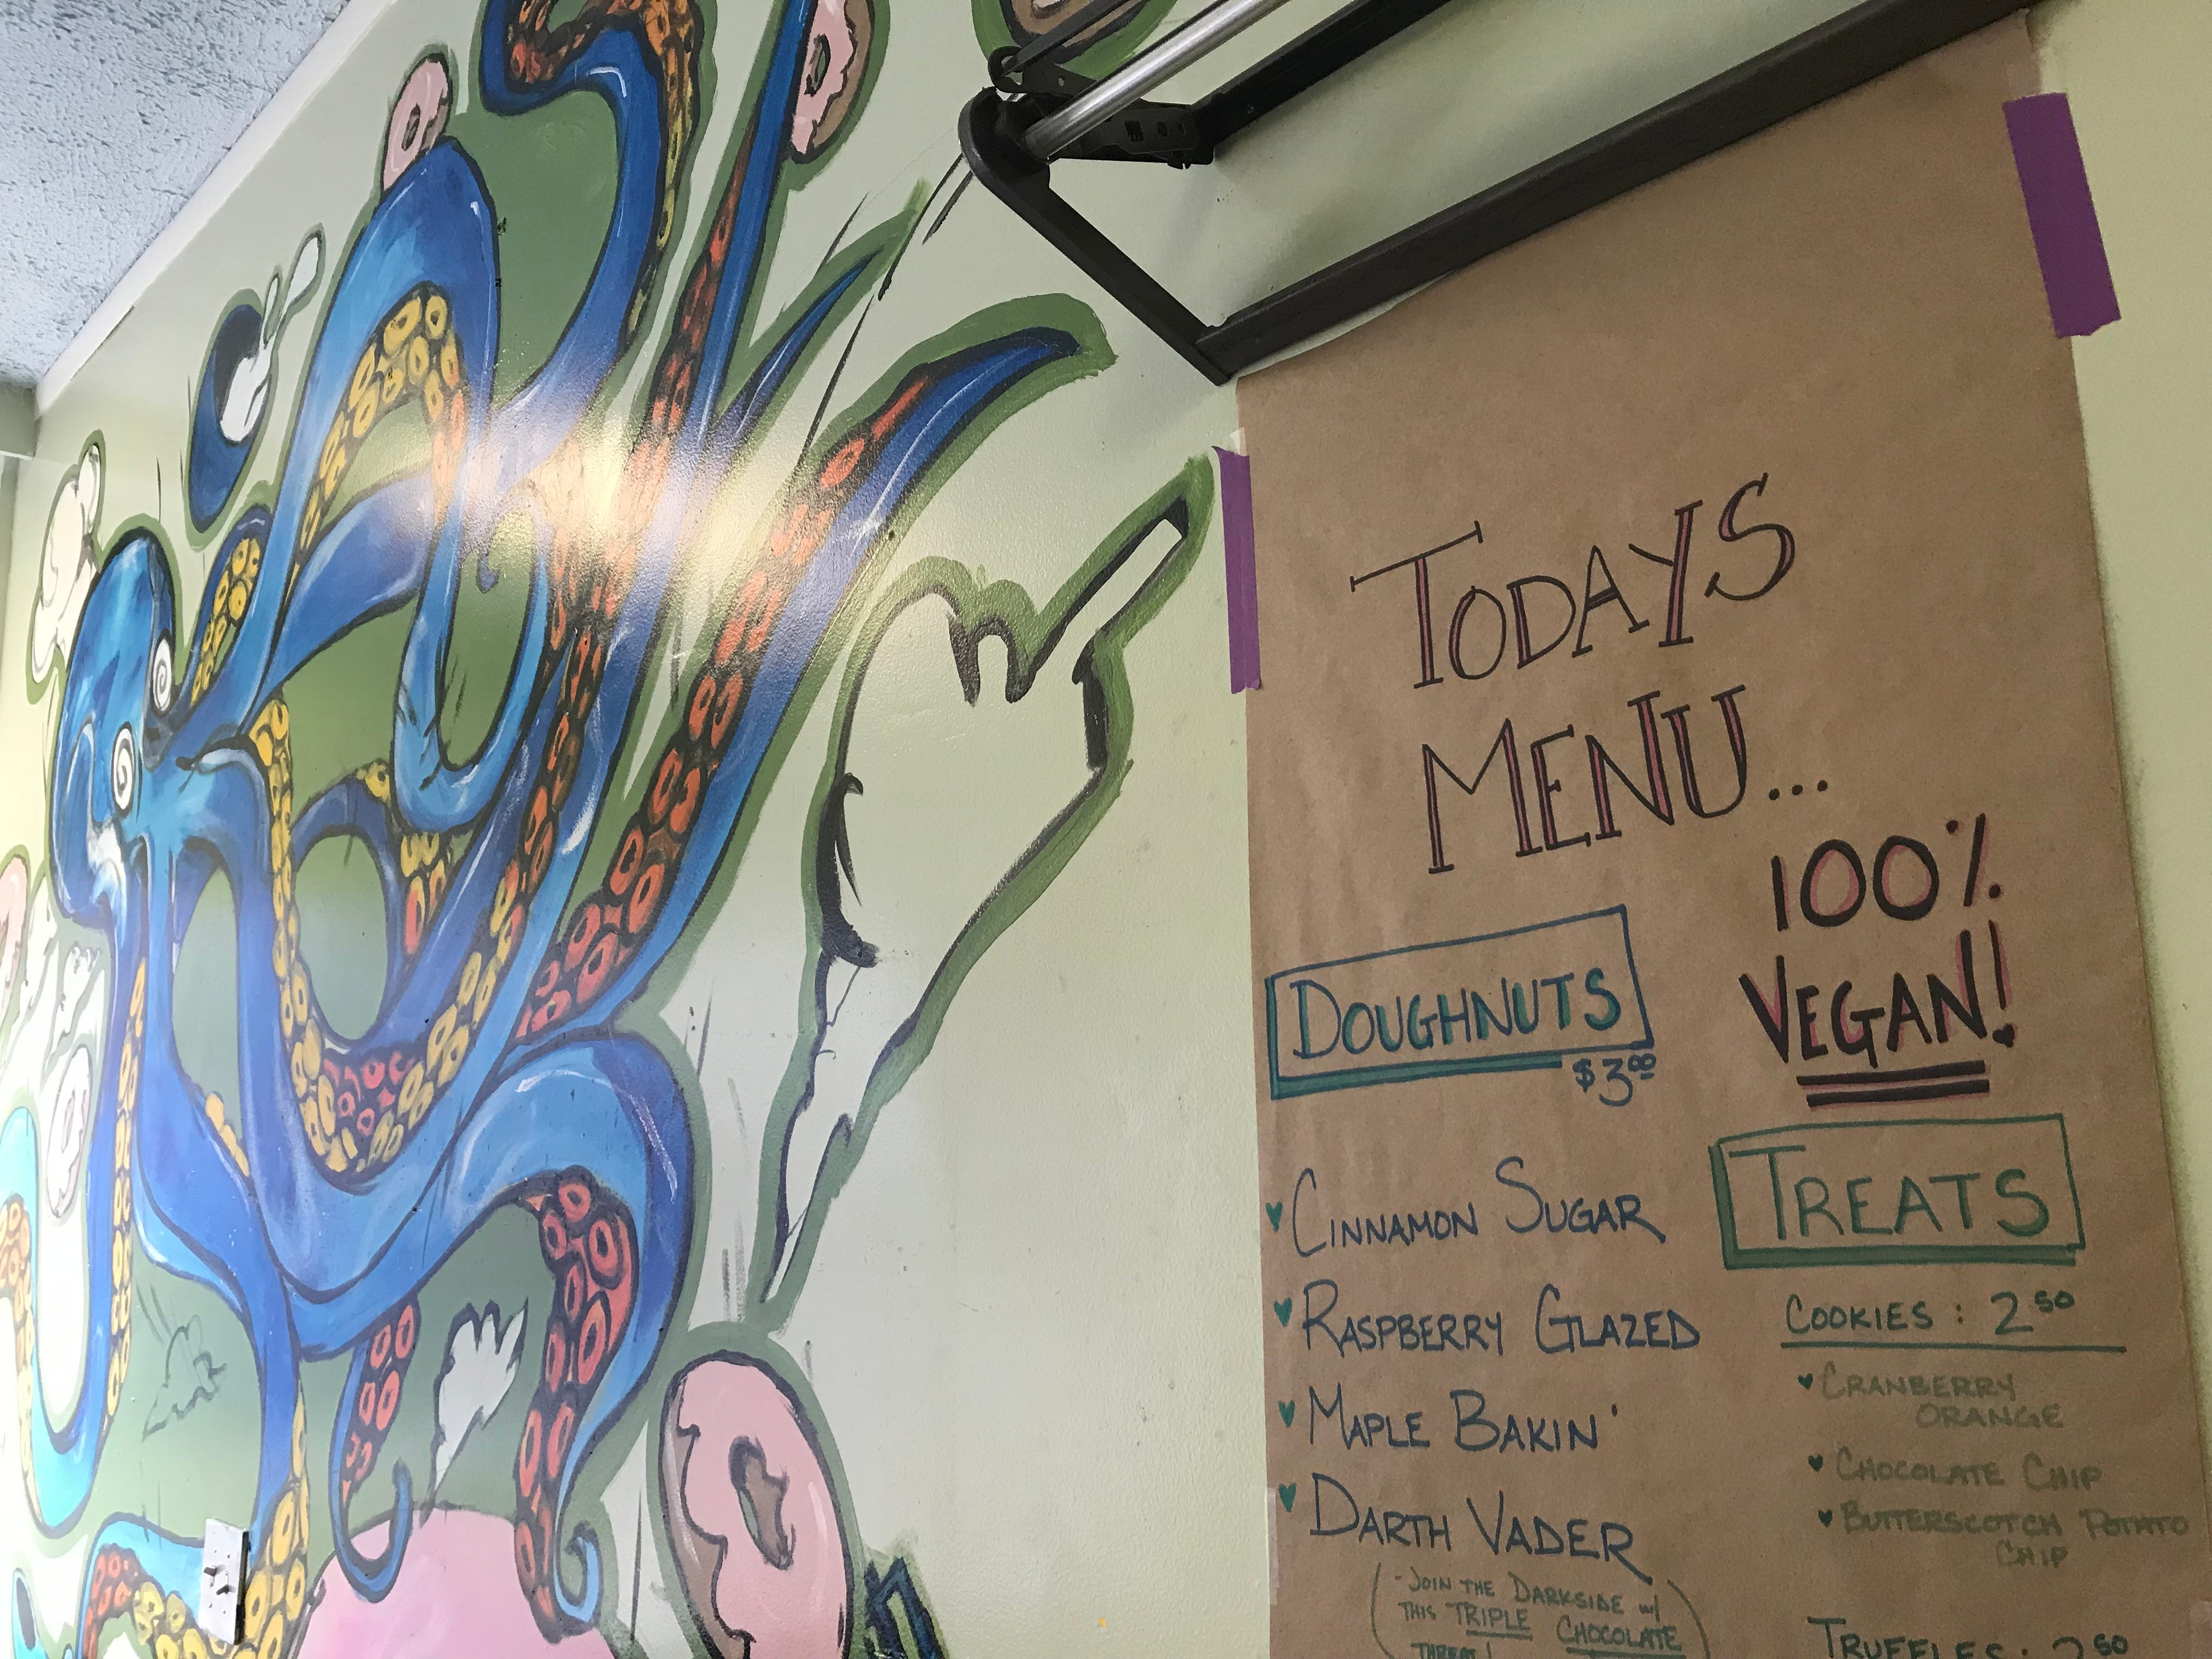 A hand written menu hangs at Misfit Doughnuts, which is entirely vegan.